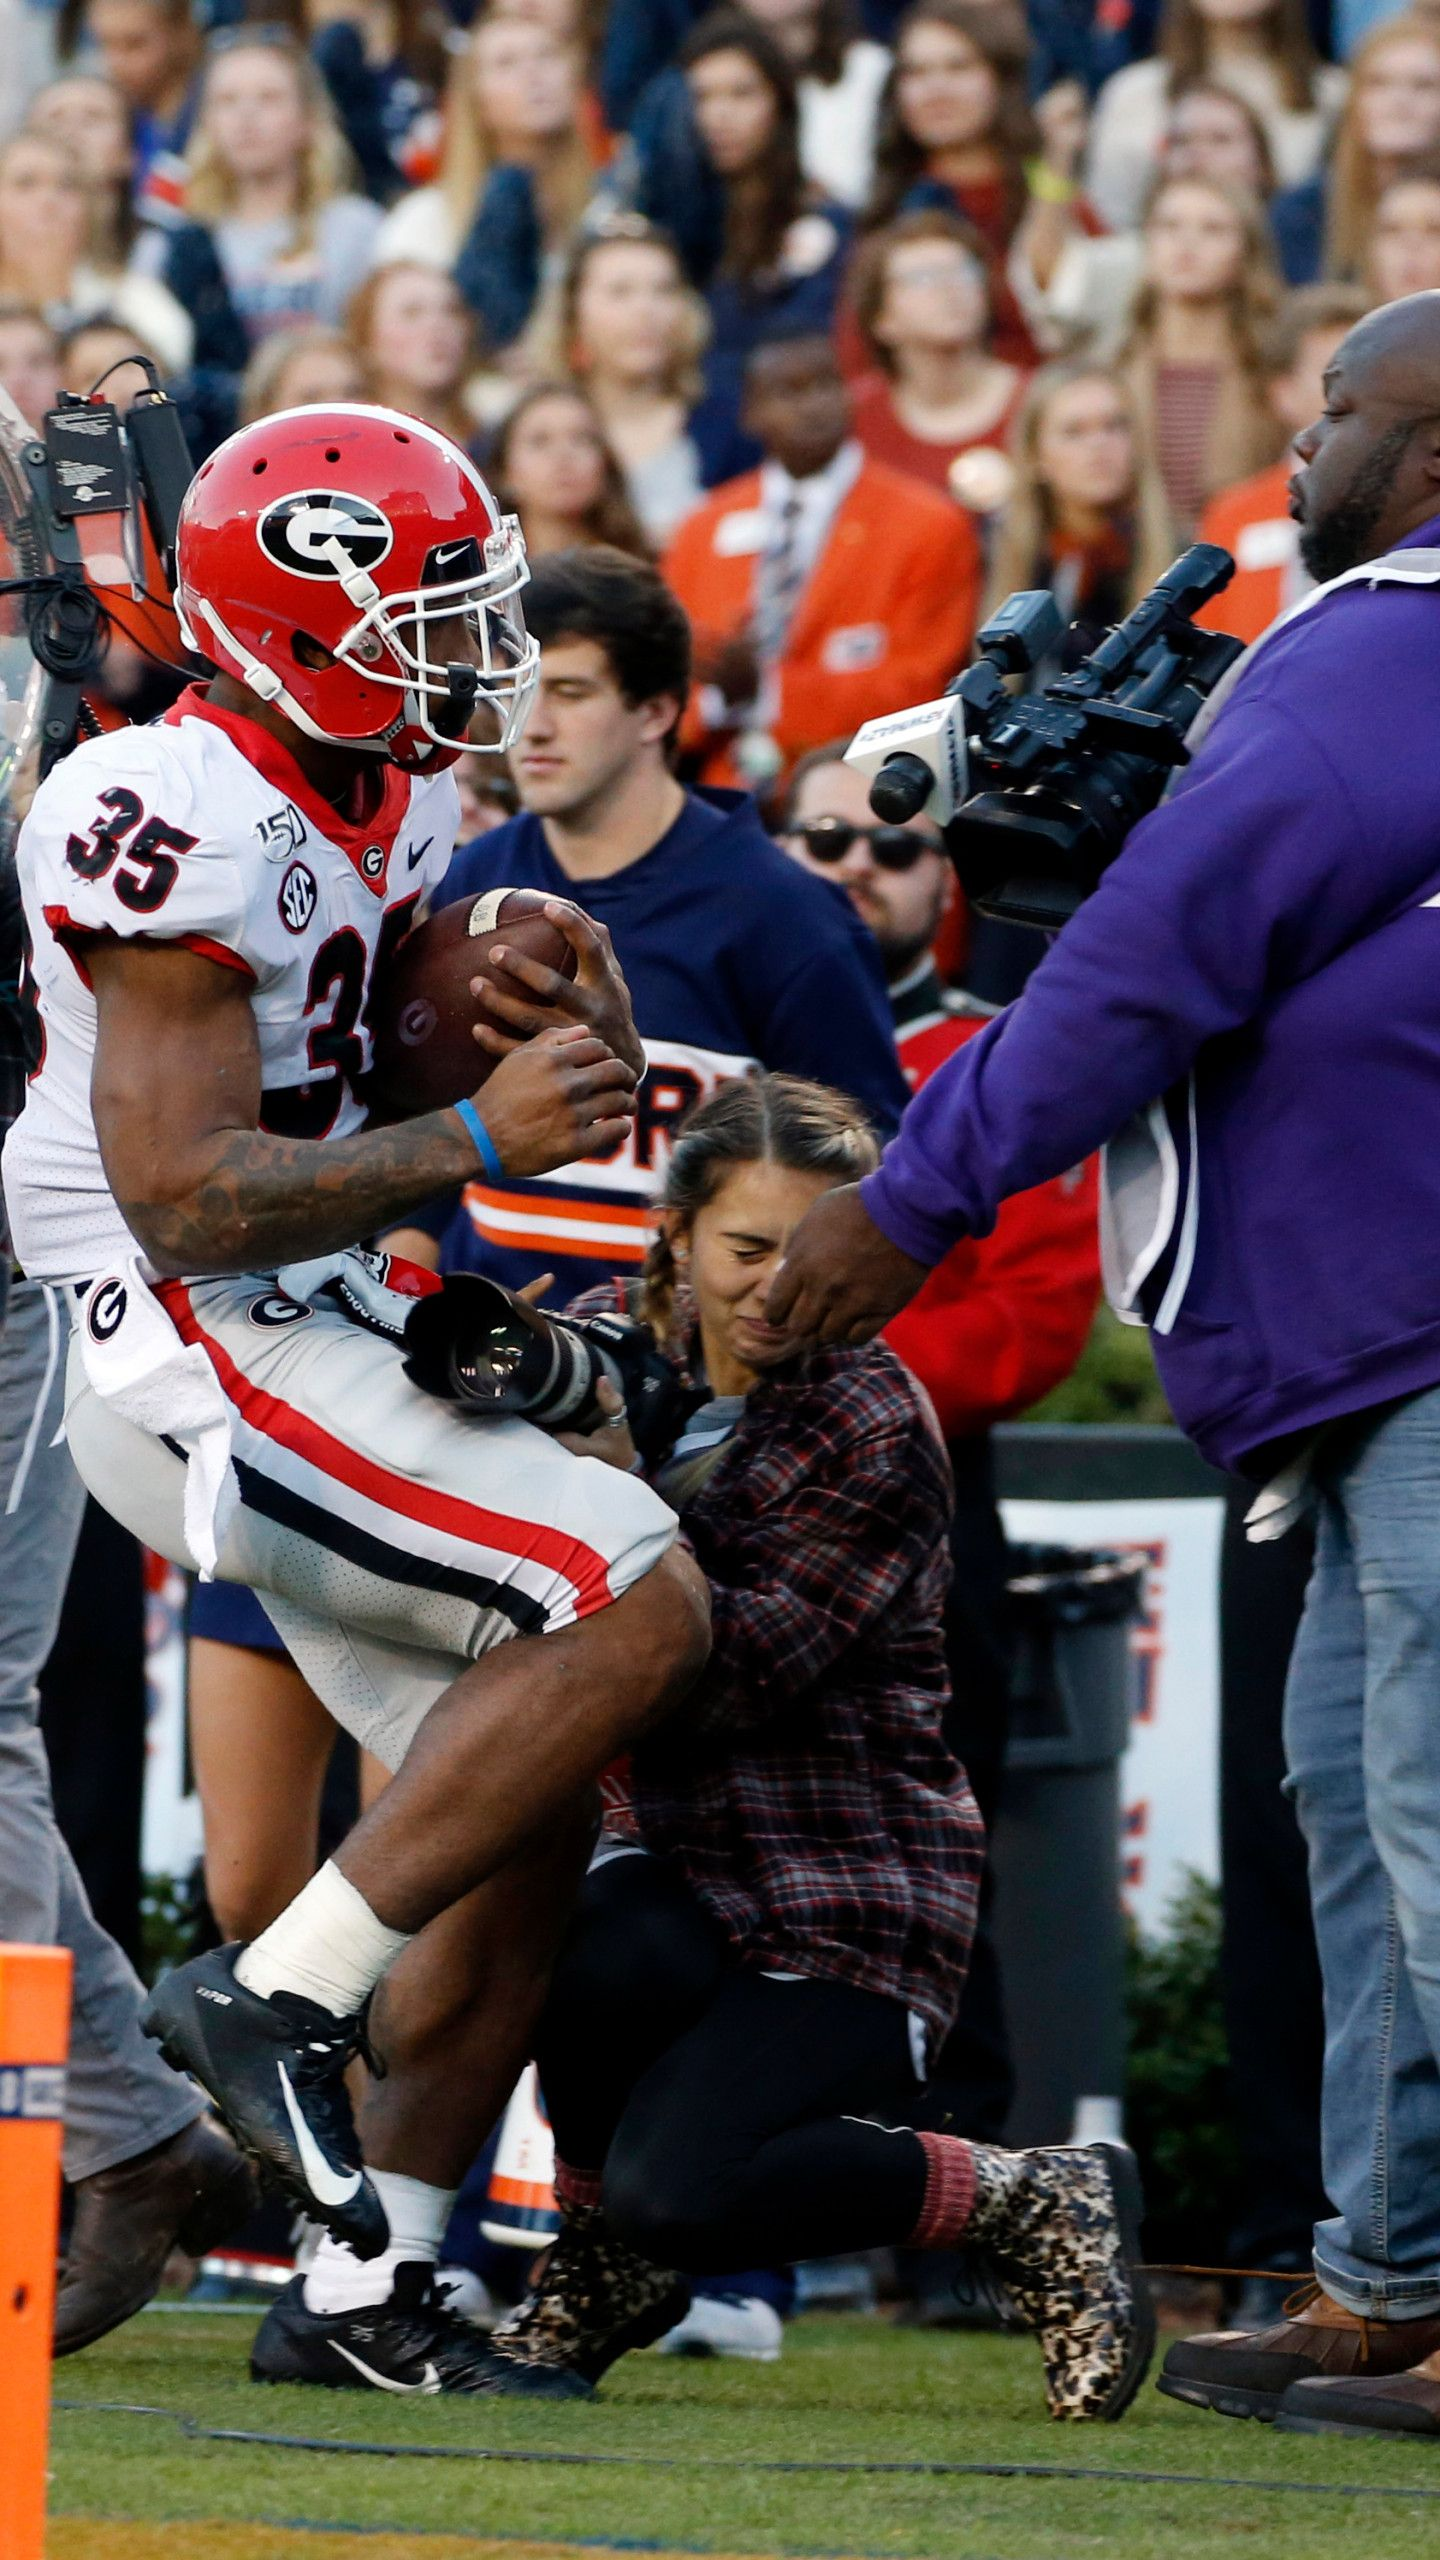 Photographer Hit In Auburn Game Out Of Hospital is